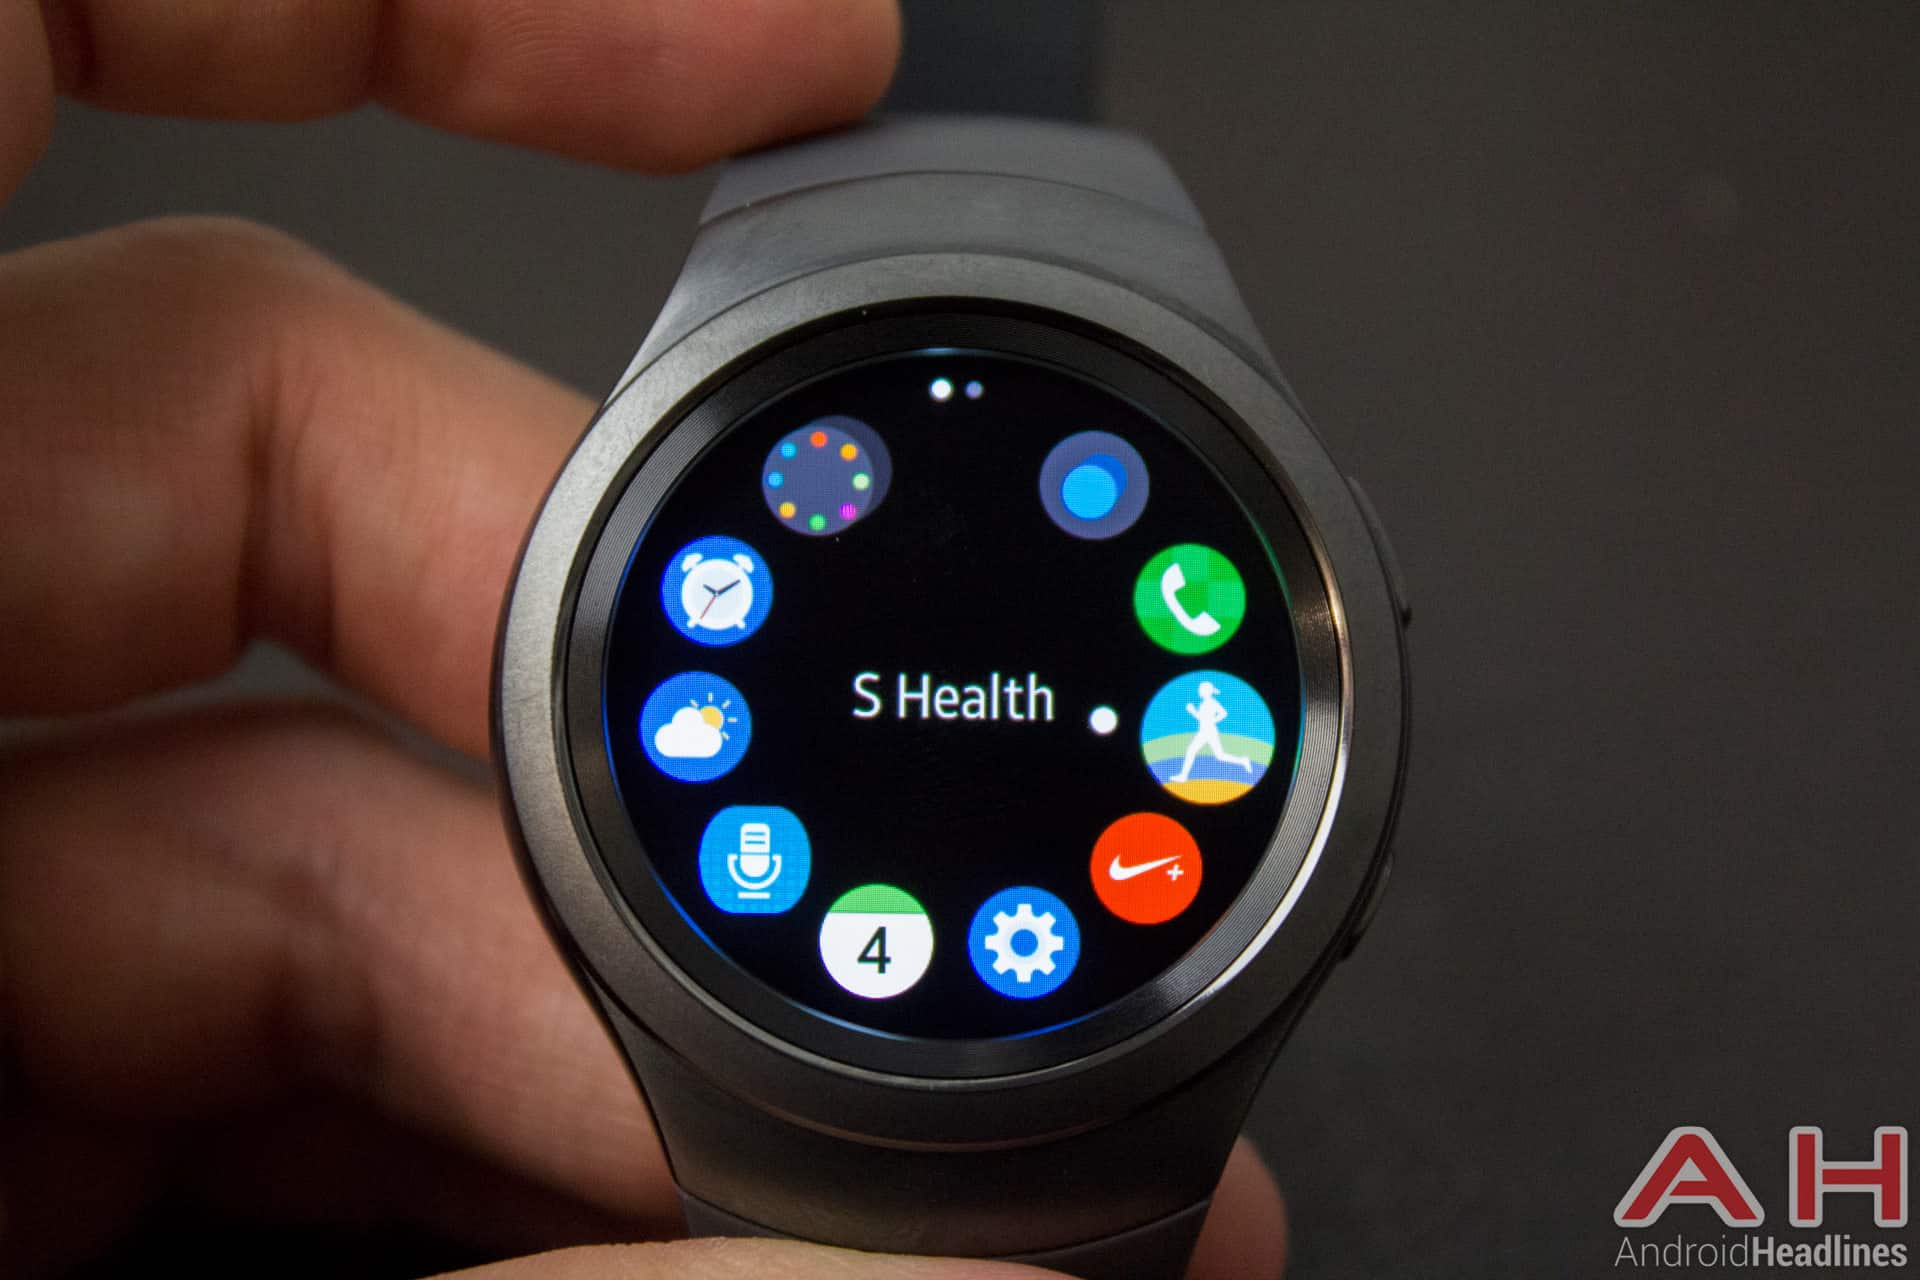 Samsung-Gear-S2-AH-apps